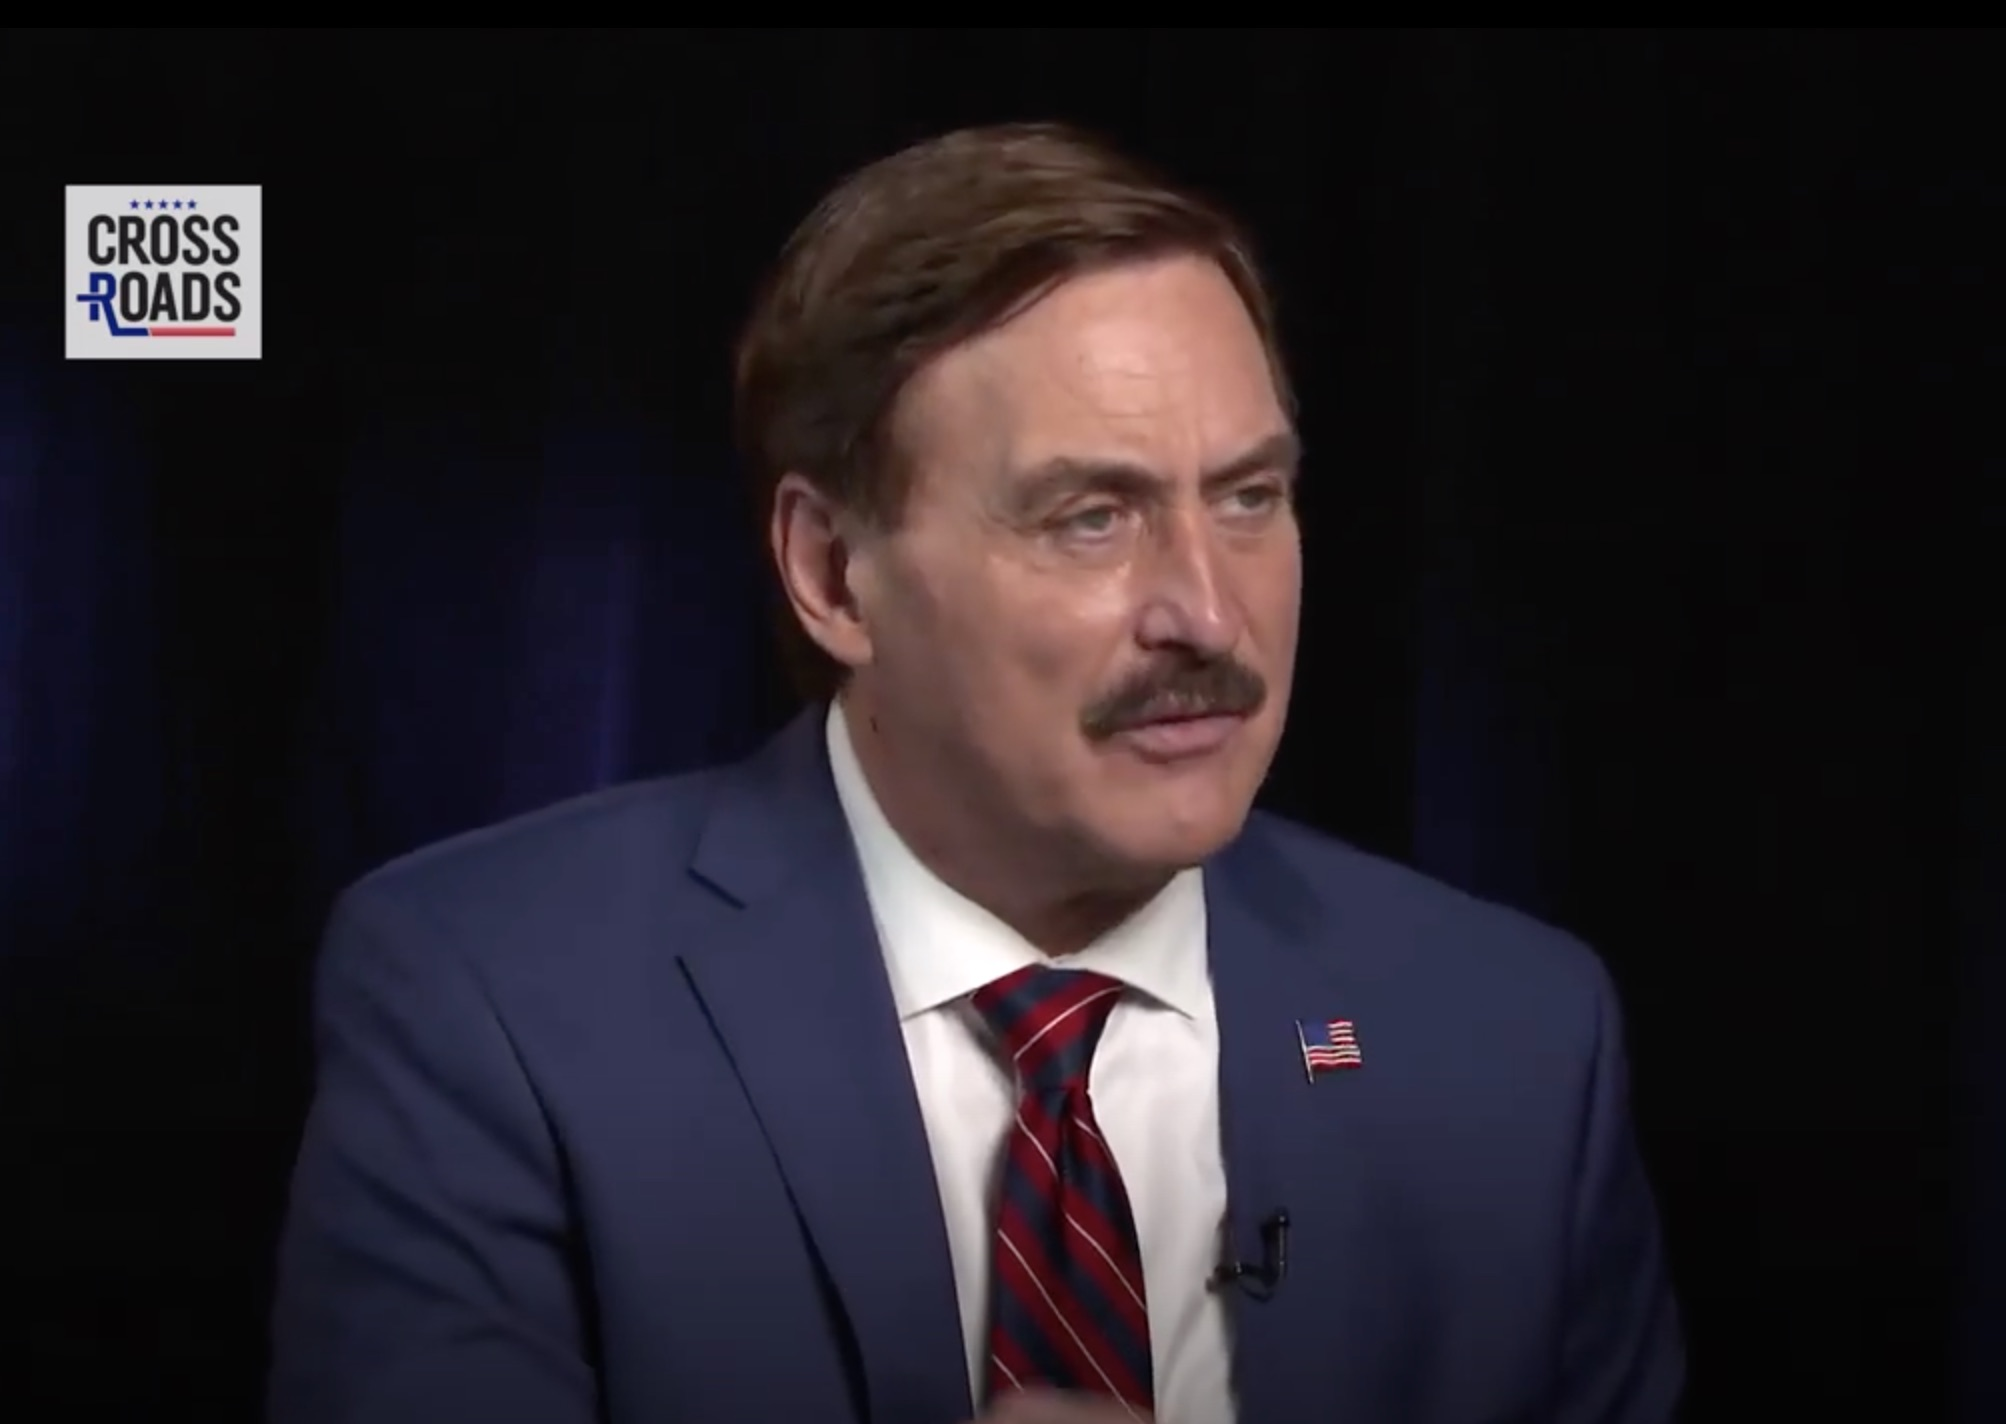 From Crack Addict to Millionaire - Mike Lindell's Story of Hope